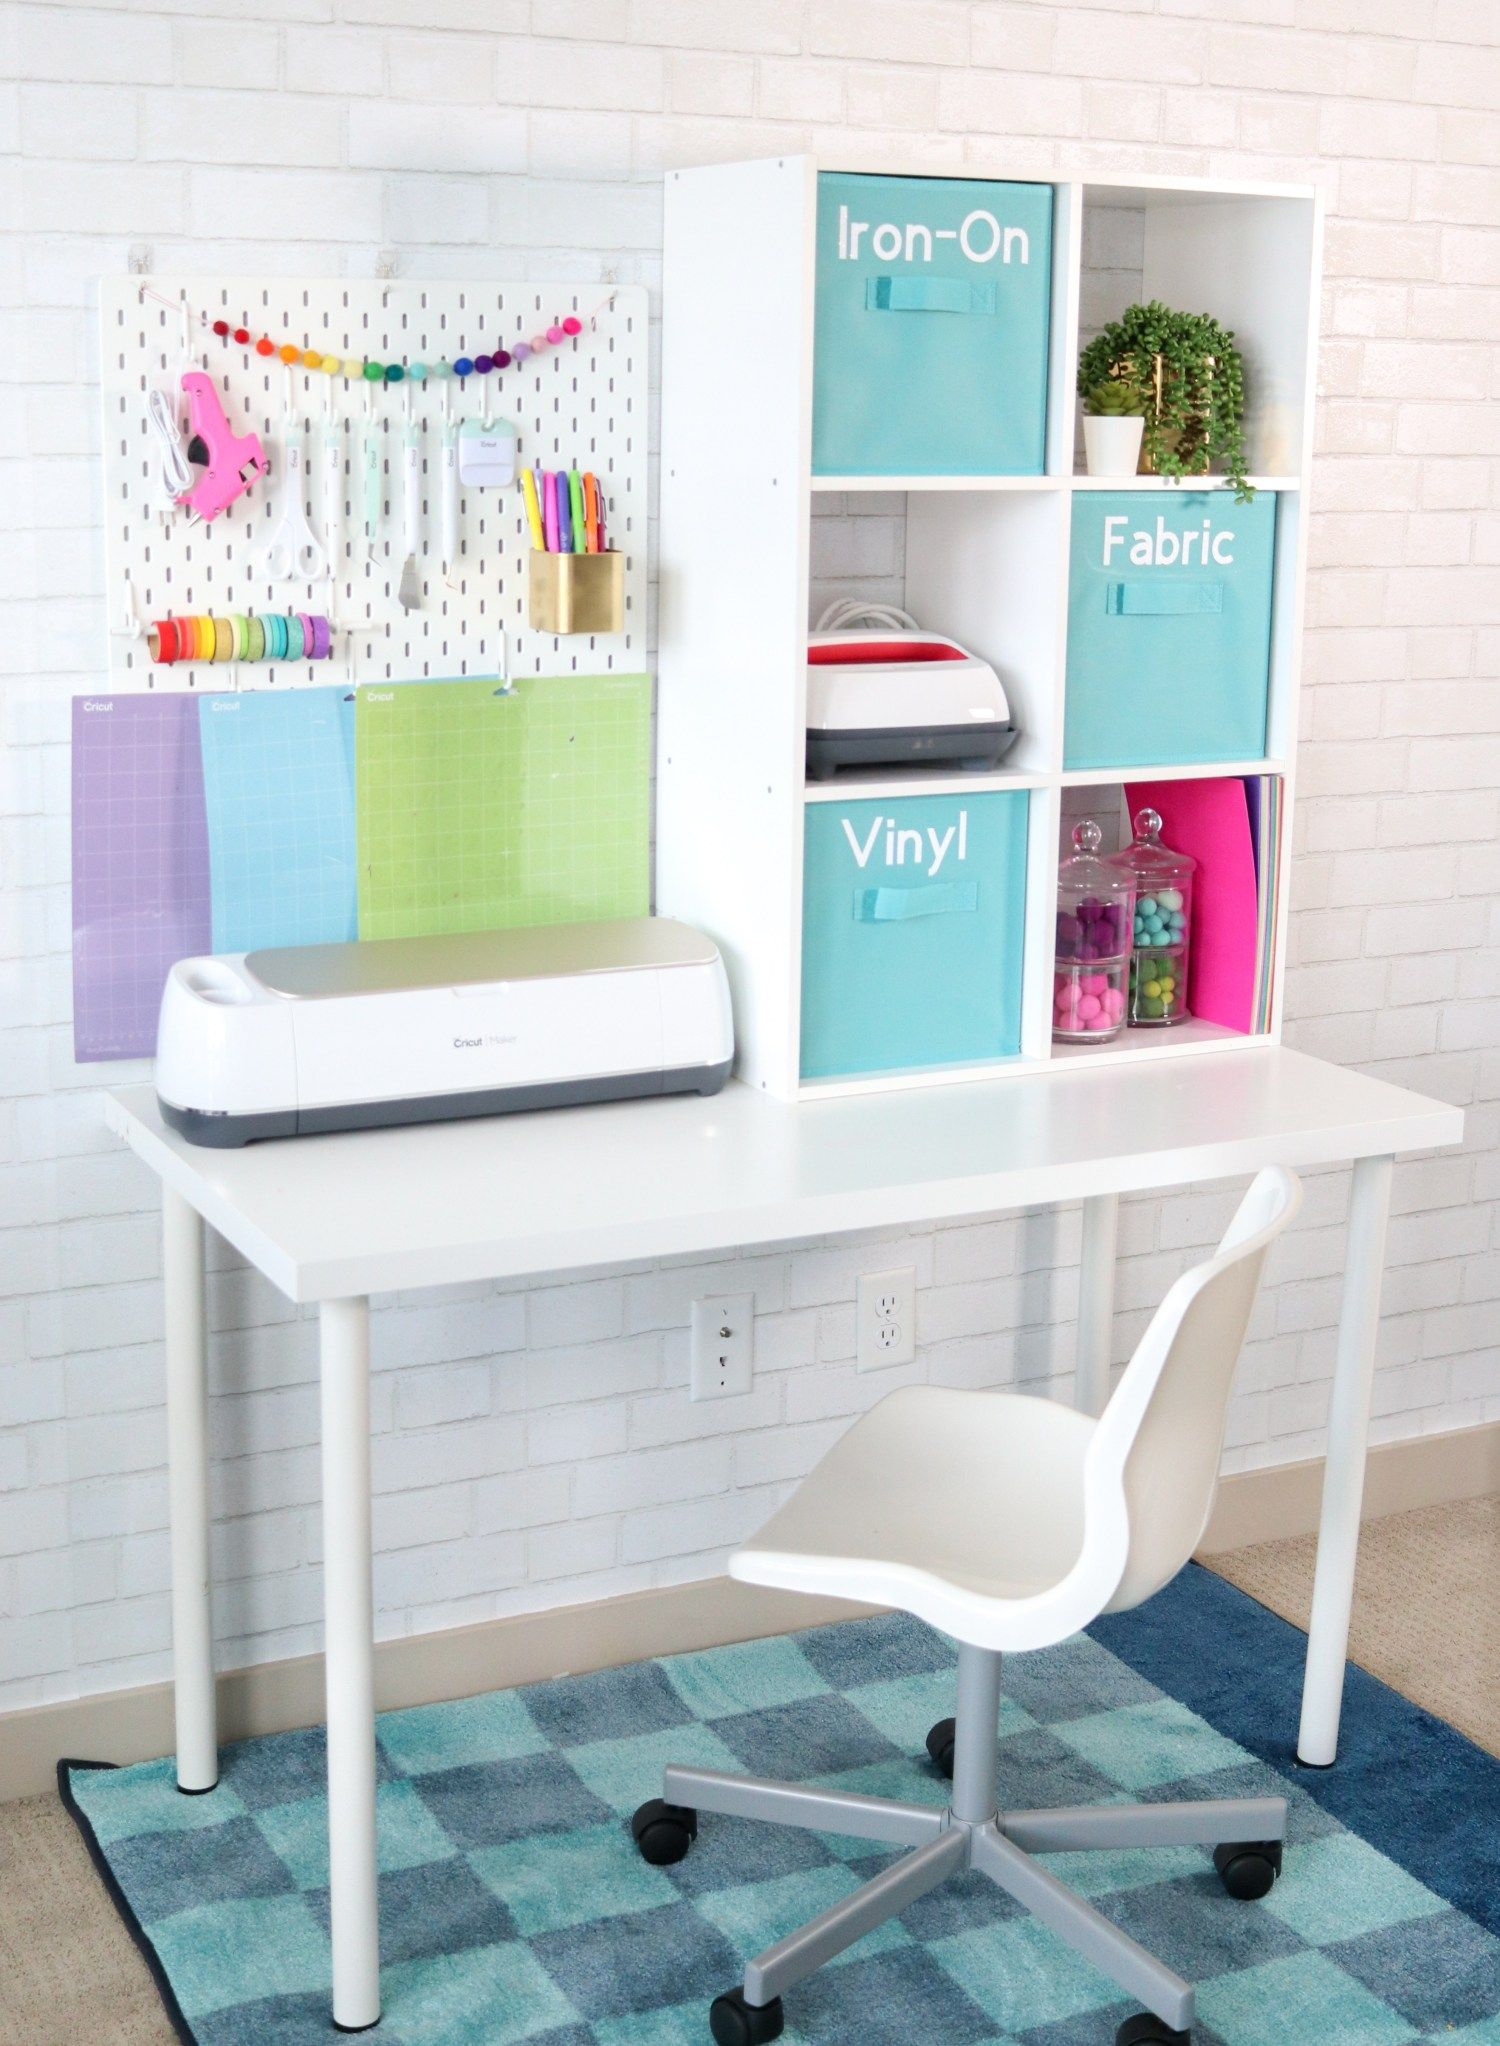 Create A Cricut Craft Room On A Budget #cricutcrafts